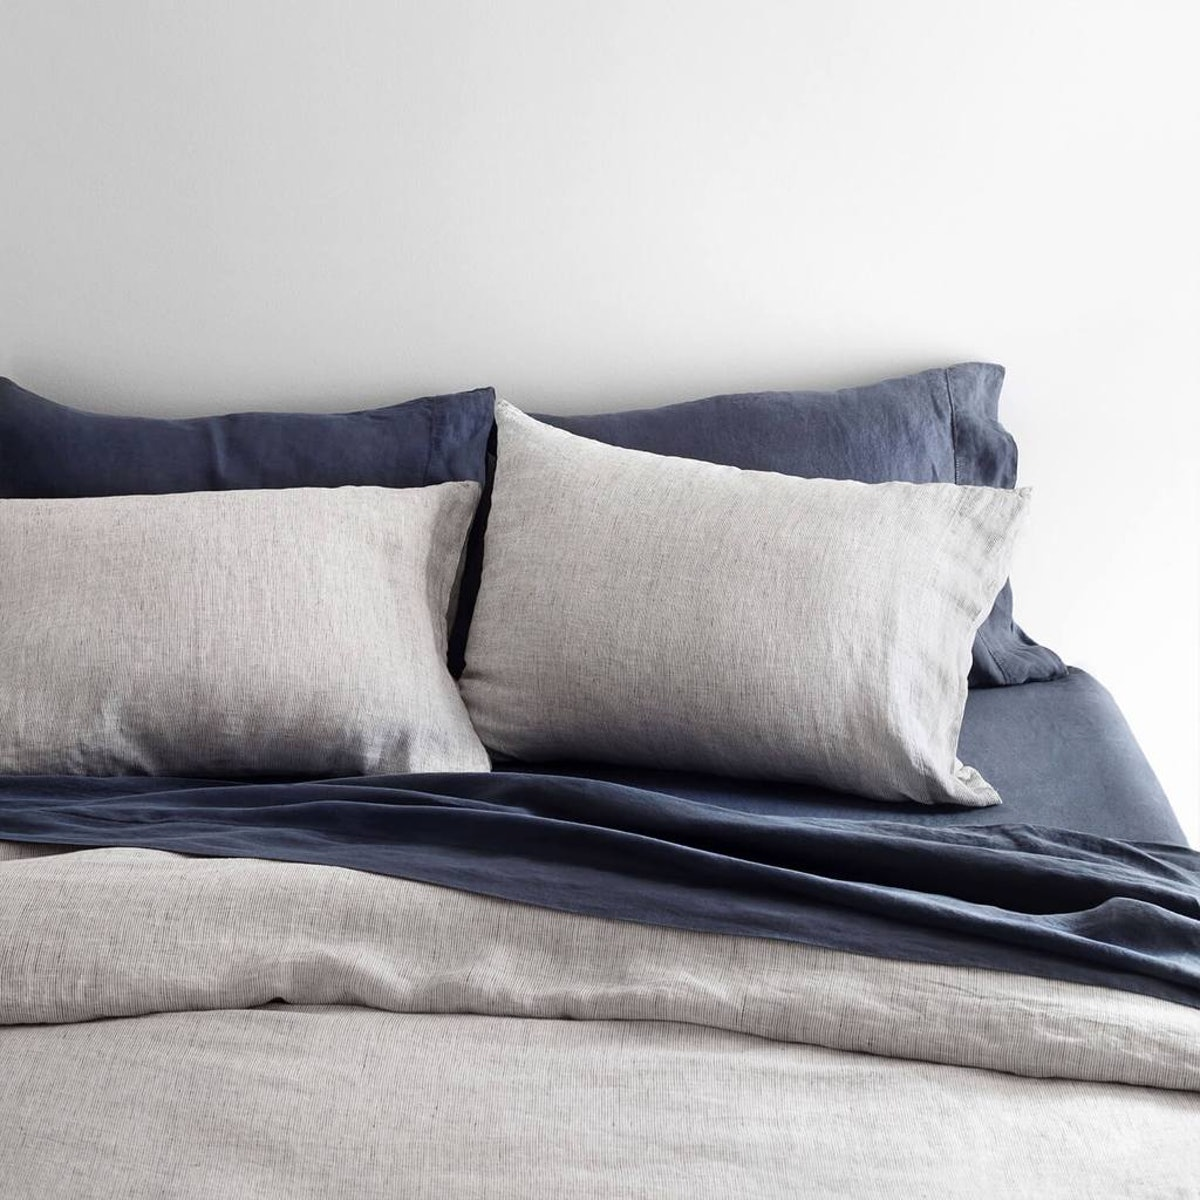 Stonedwashed Linen Bed Bundle - Midnight Series